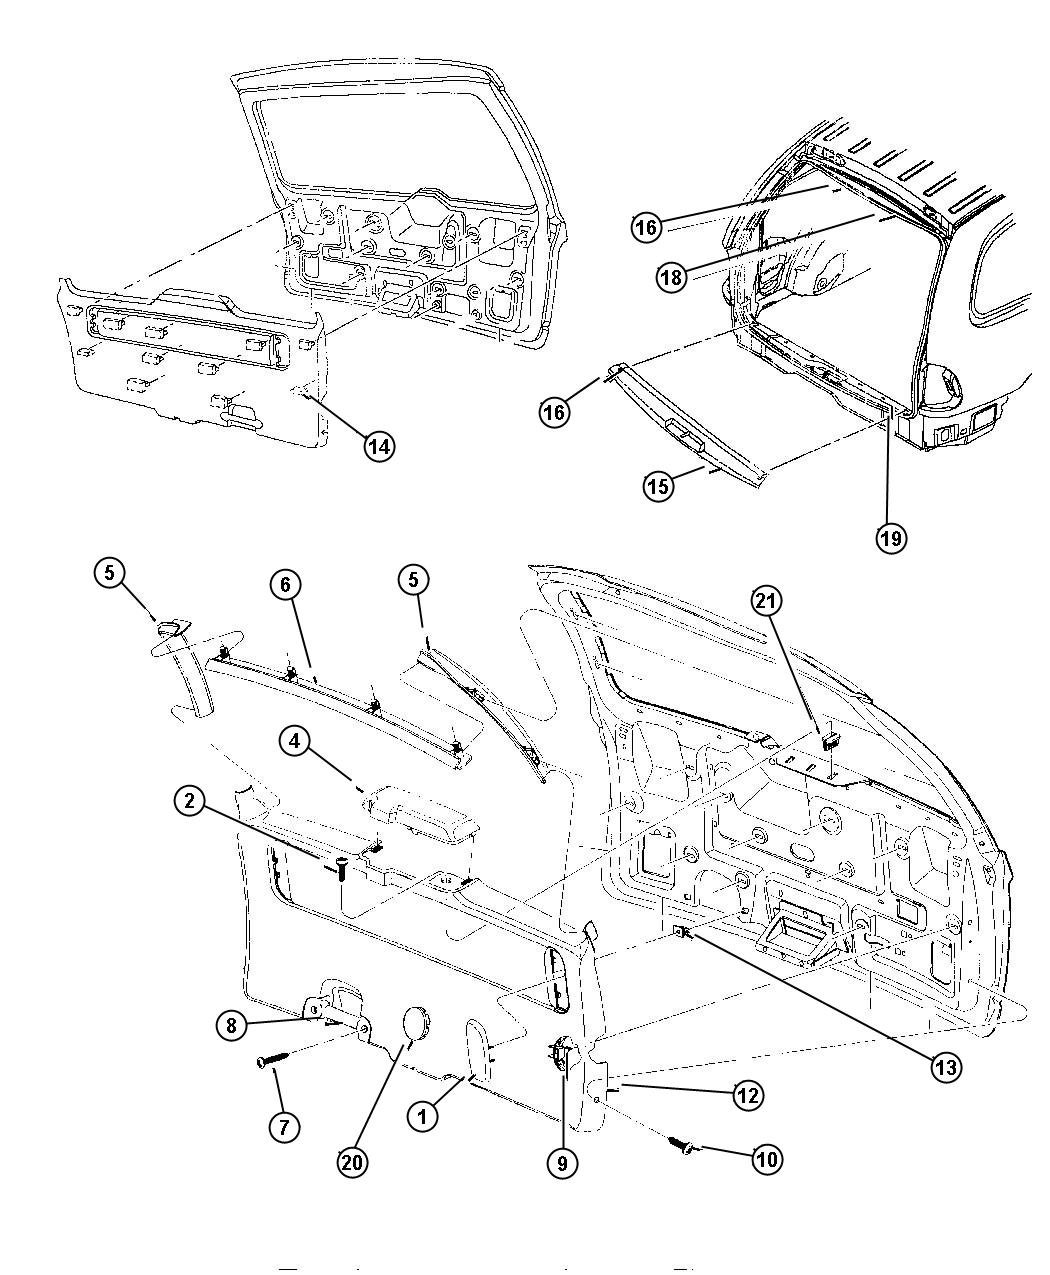 How To Remove Sliding Door Panel On Dodge Caravan: Dodge Caravan Plug. Sliding Door/liftgate. Hinge Access